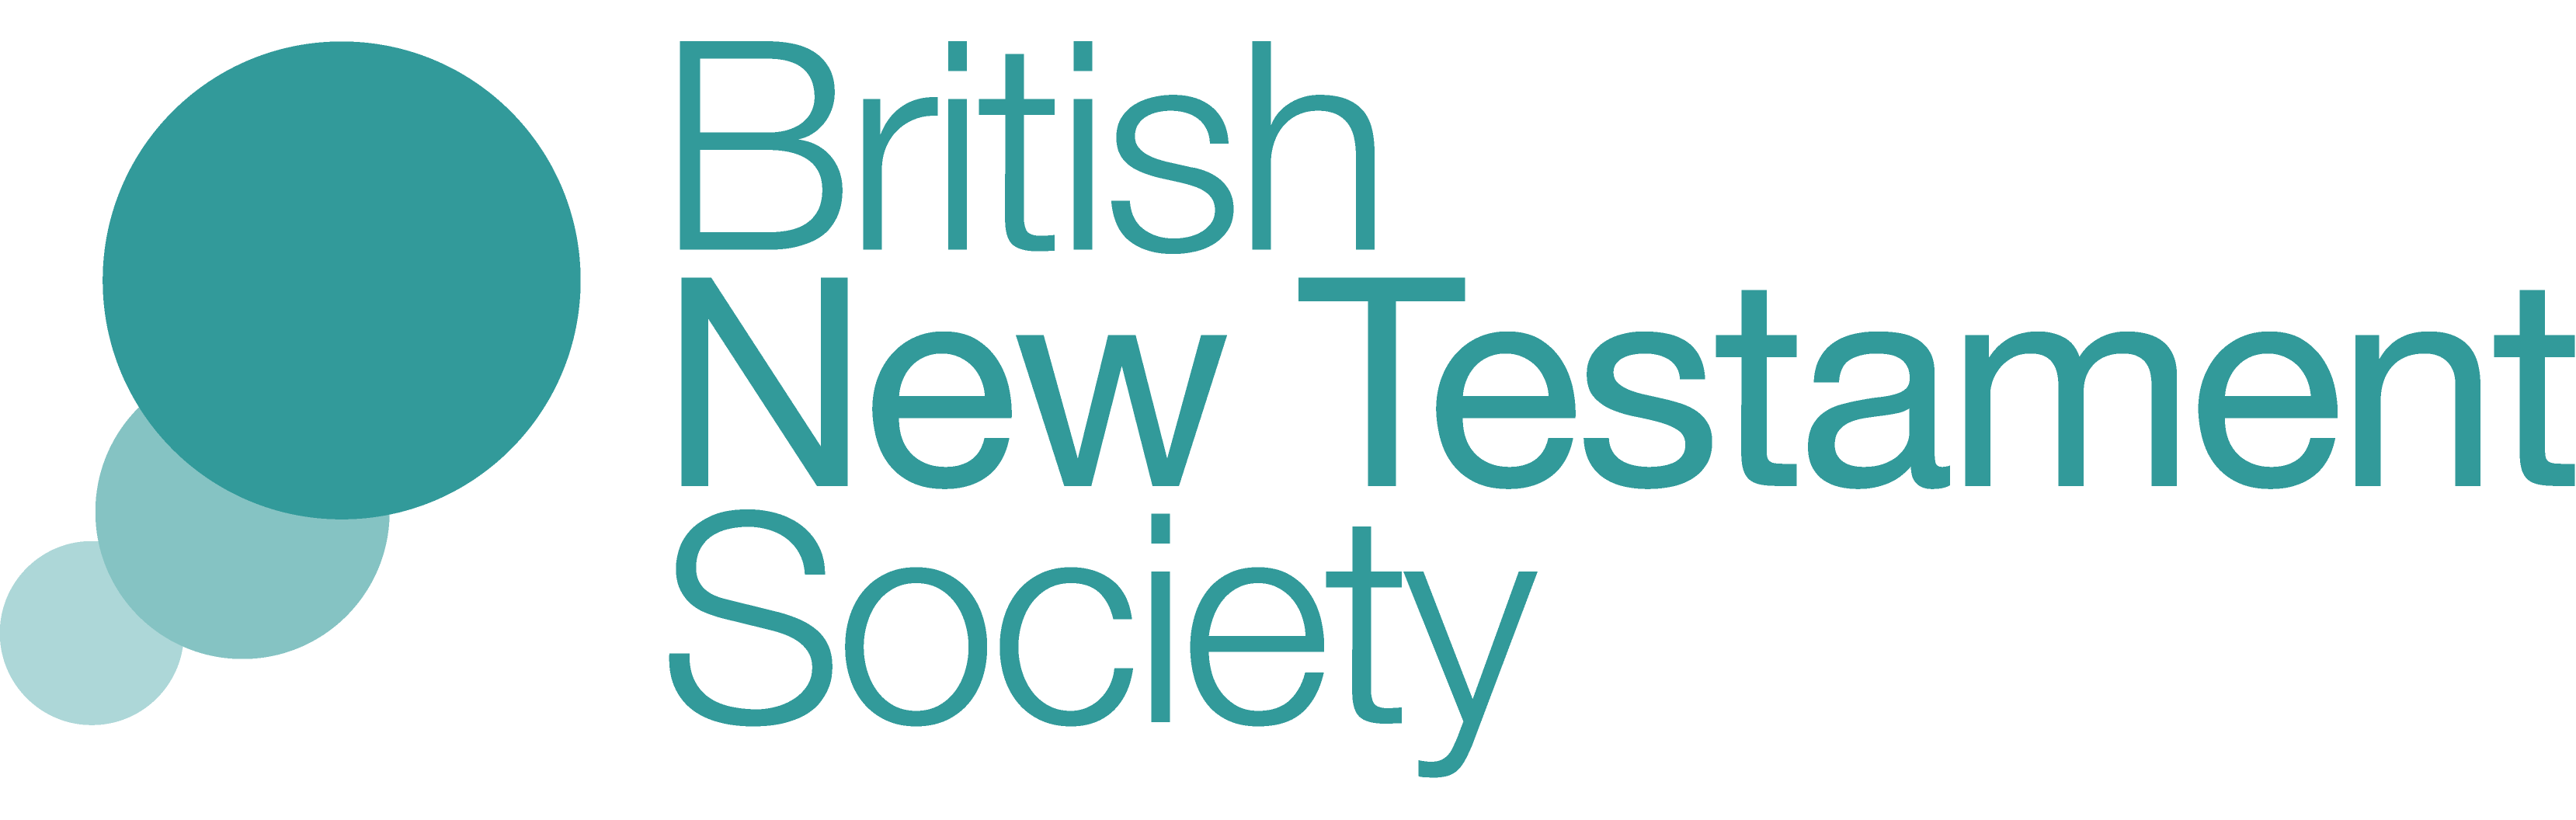 British New Testament Society